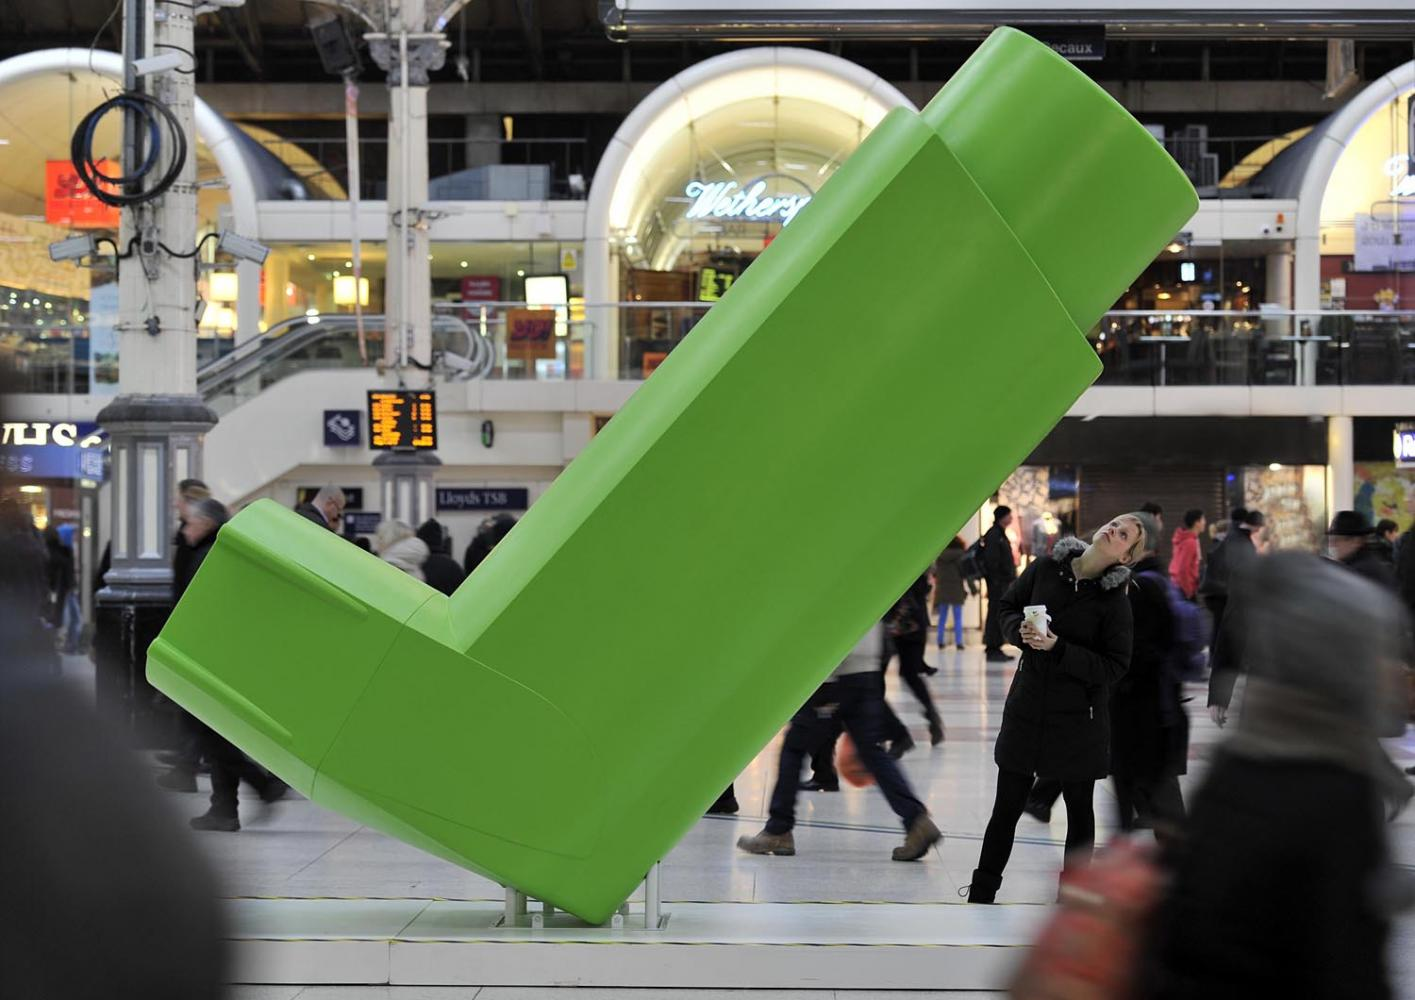 GlaxoSmithKline unveiled a giant inhaler at Victoria Station to launch the first ever UK-wide inhaler recycling and recovery scheme - Complete the Cycle